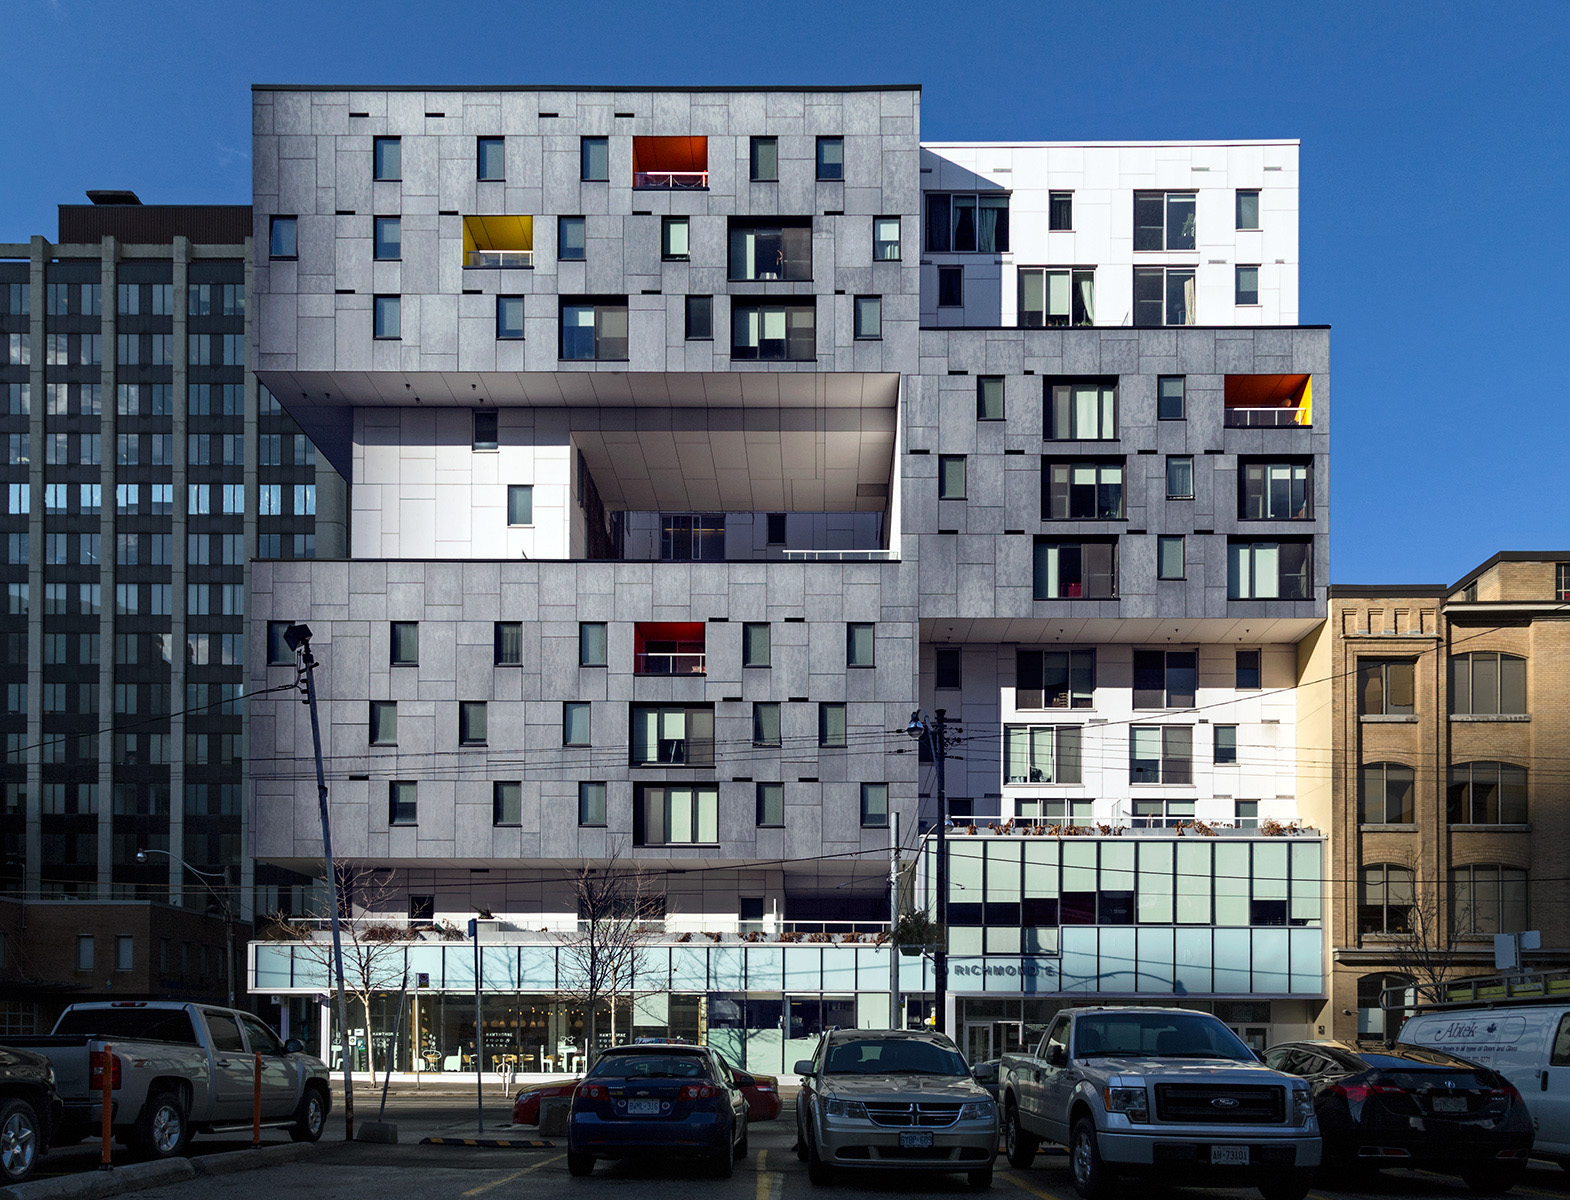 20160203. Toronto's impressive 60 Richmond housing cooperative